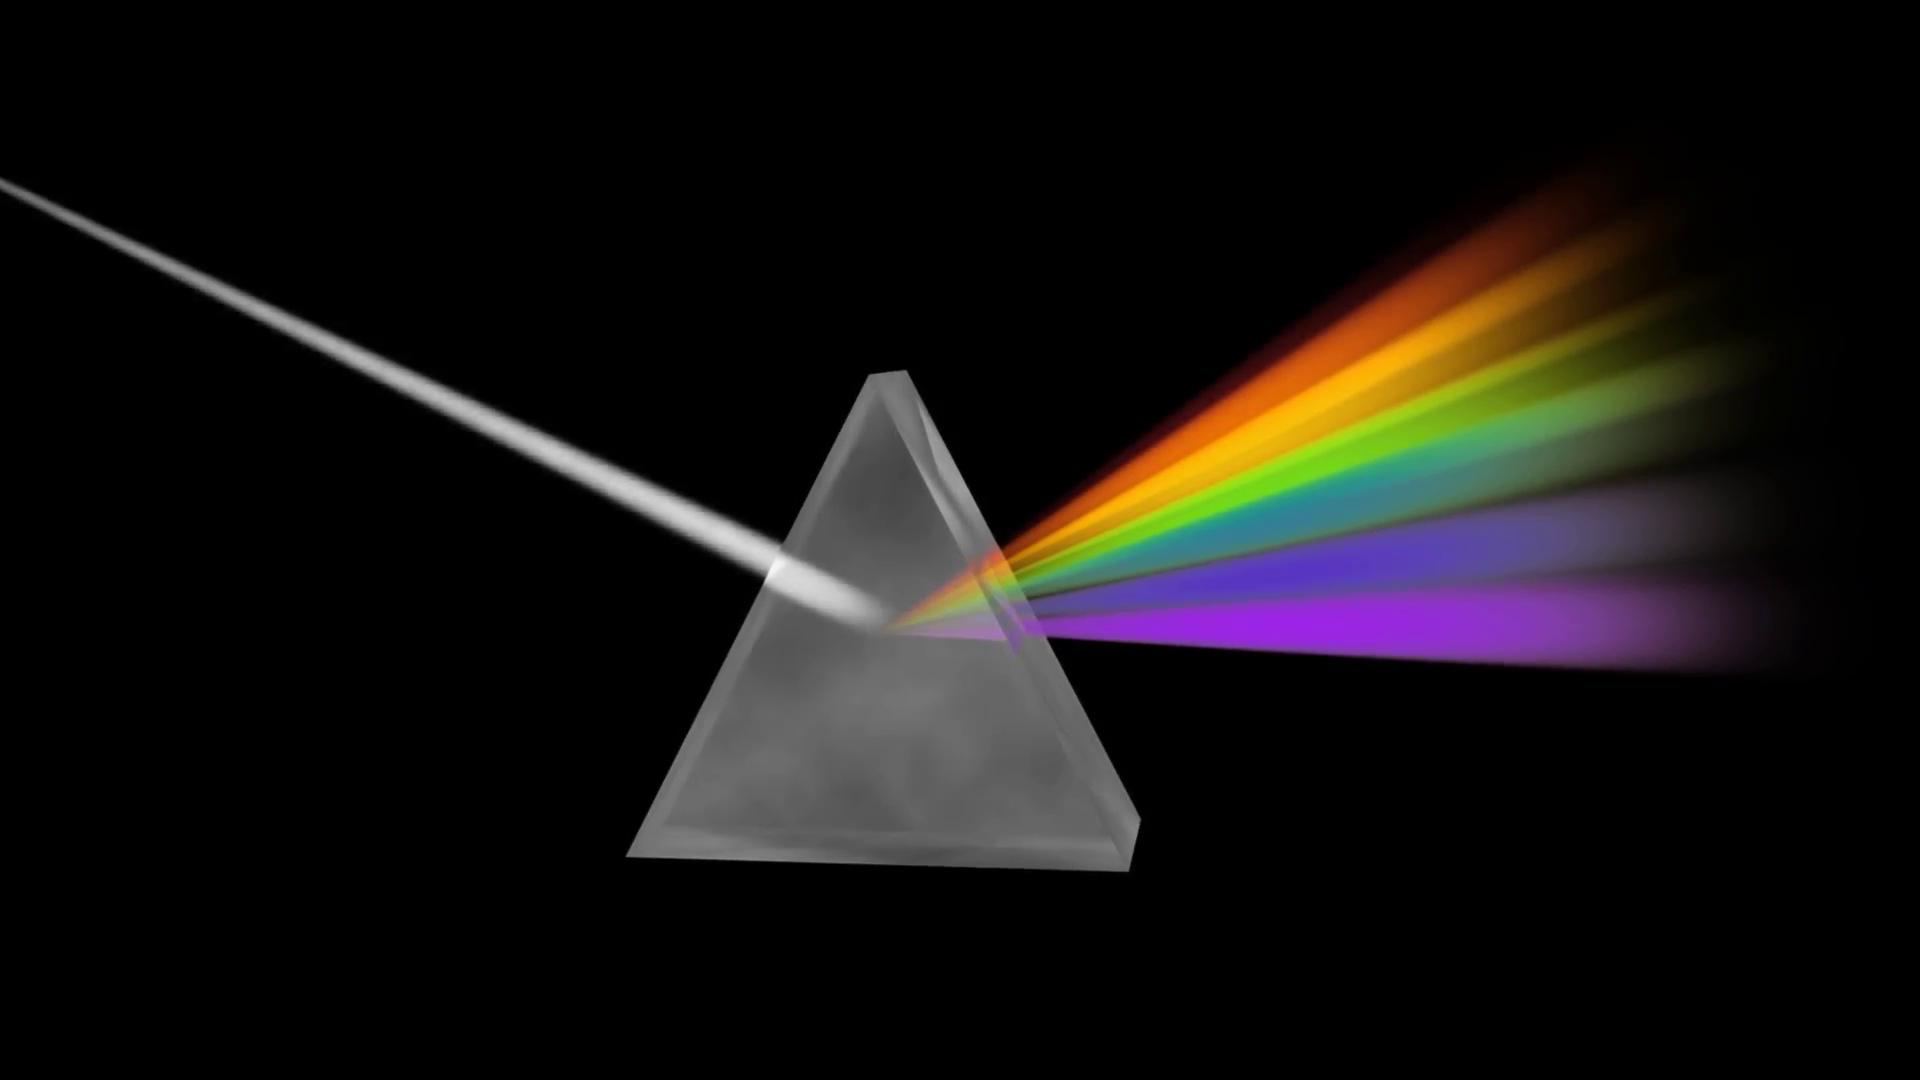 Prism Separating Light Spectrum Motion Background.